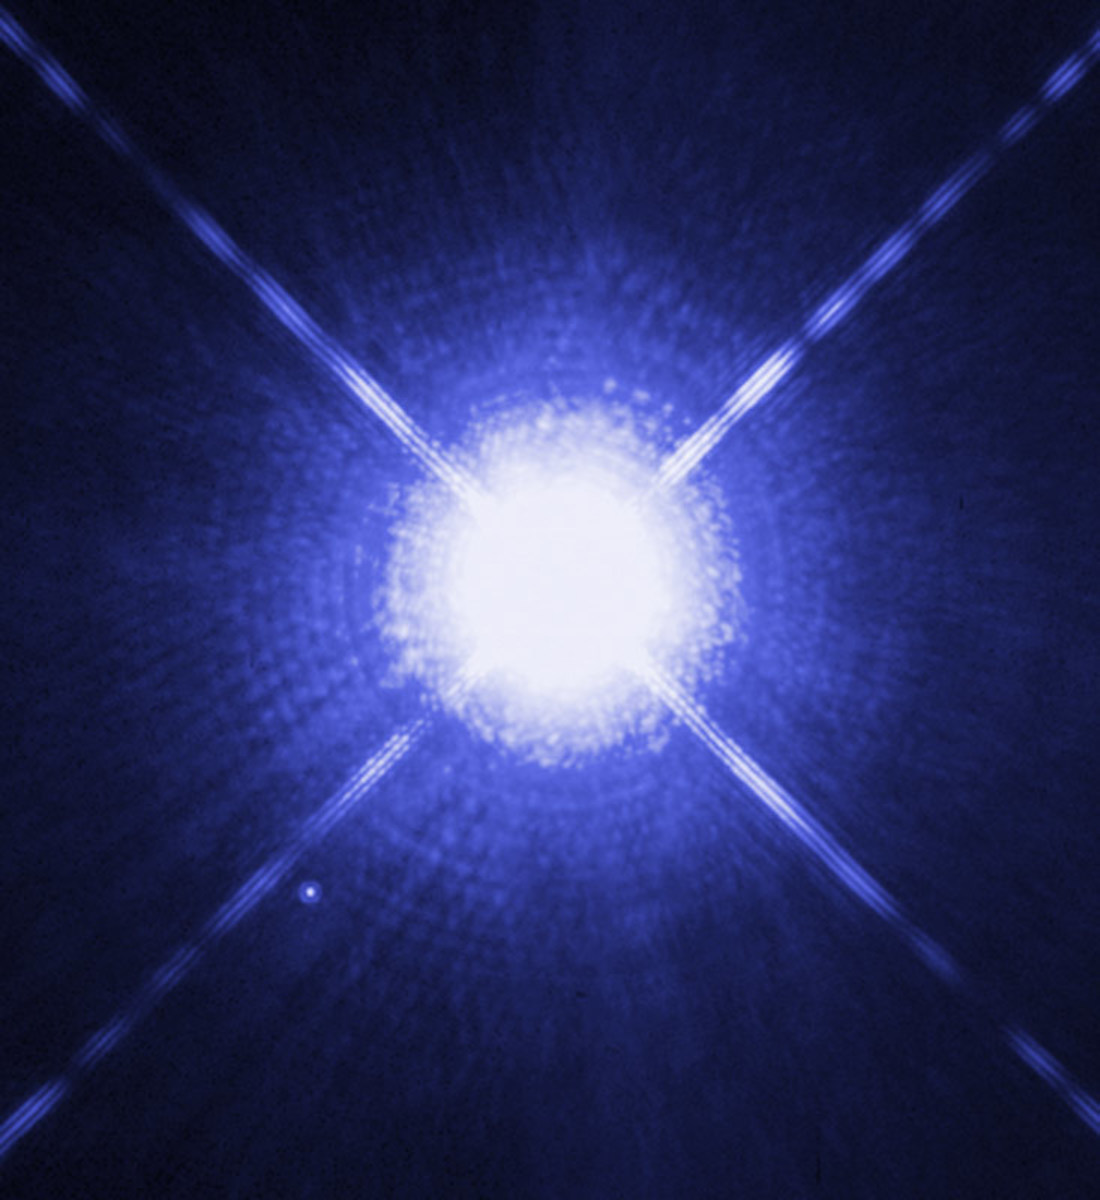 Can you see Sirius A's tiny white dwarf companion, Sirius B? (lower left)